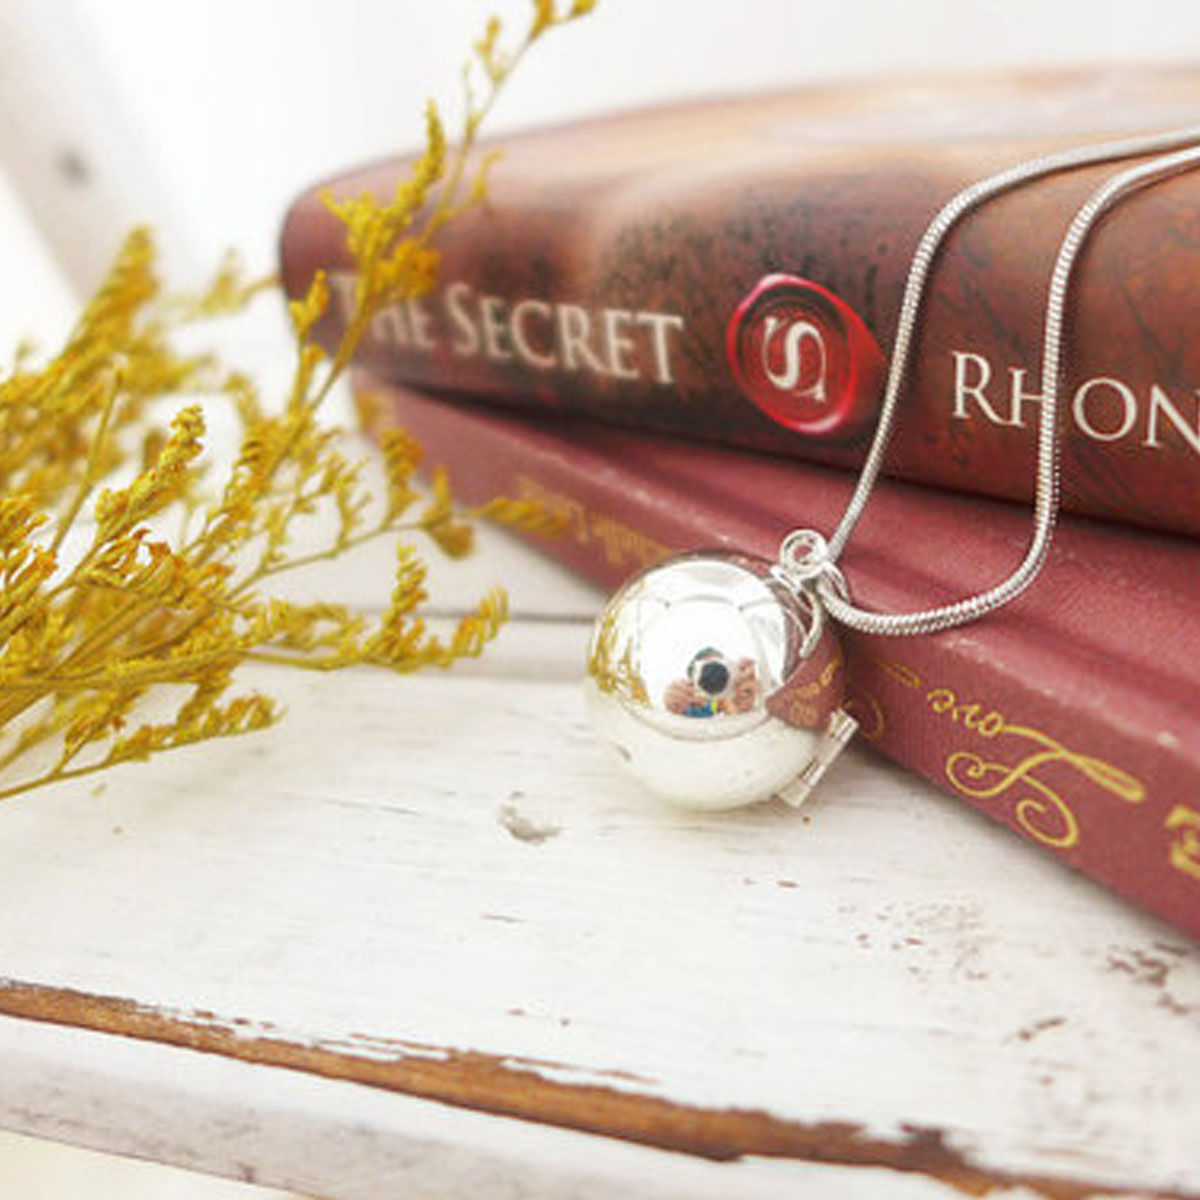 rachel necklace lockets wren secret candidate message by original locket product ball